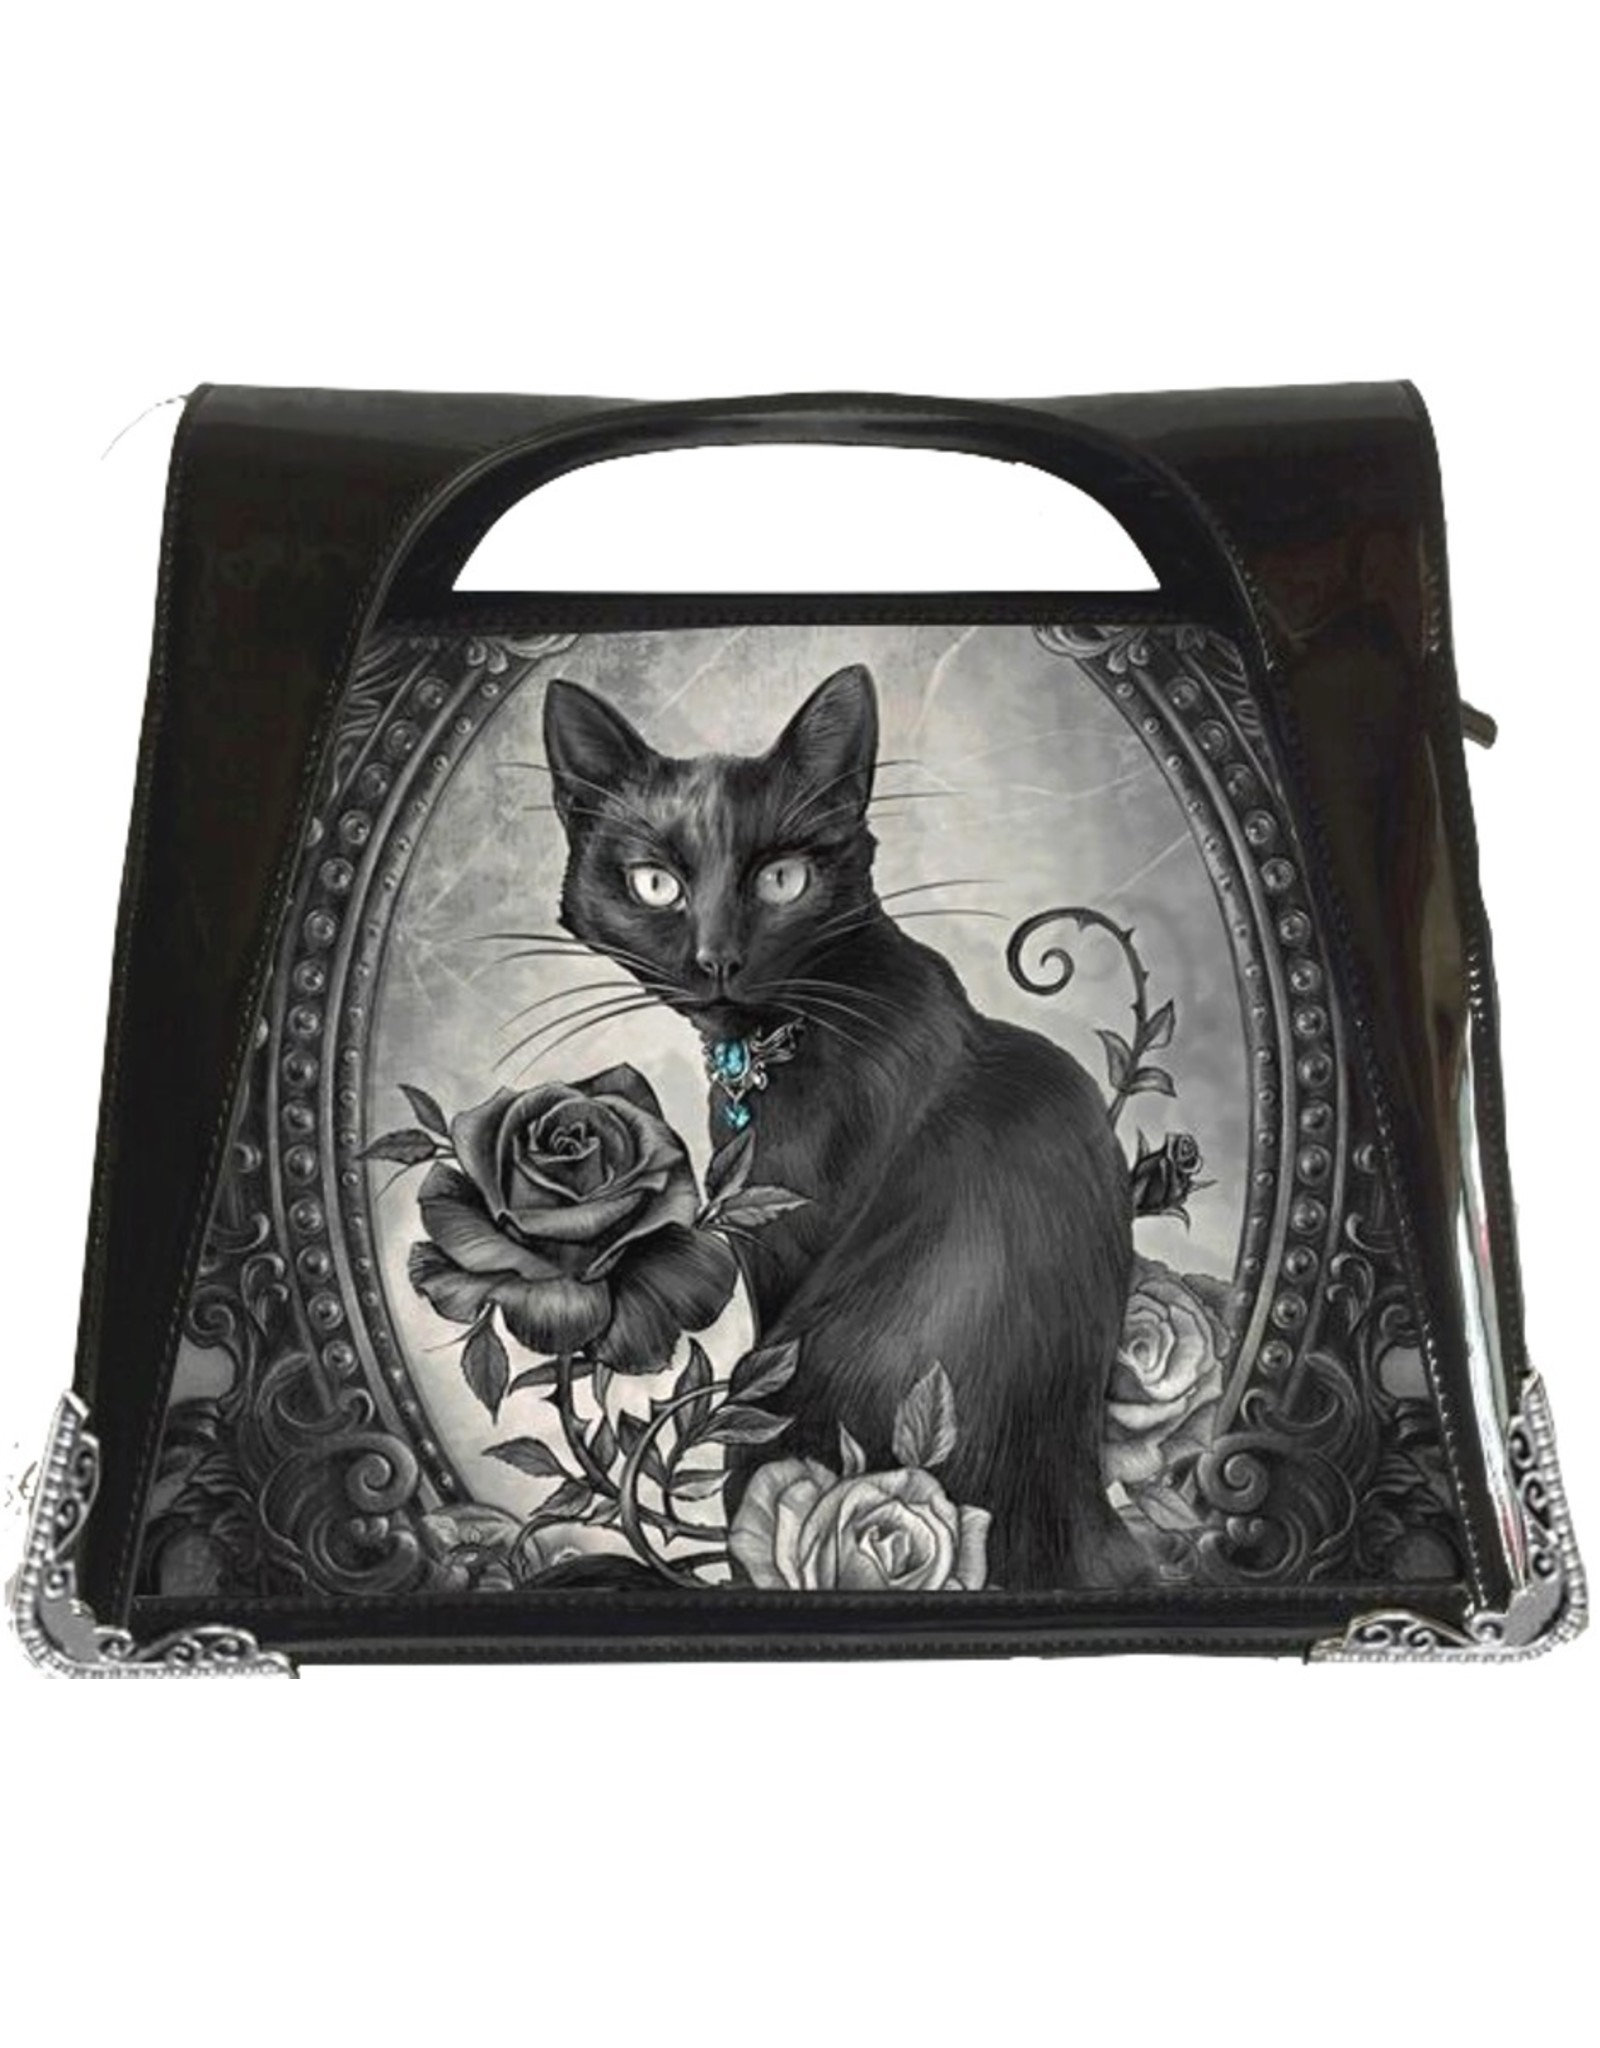 Alchemy Gothic bags Steampunk bags - Alchemy Parcelsus 3D lenticular handbag Black Cat with Roos